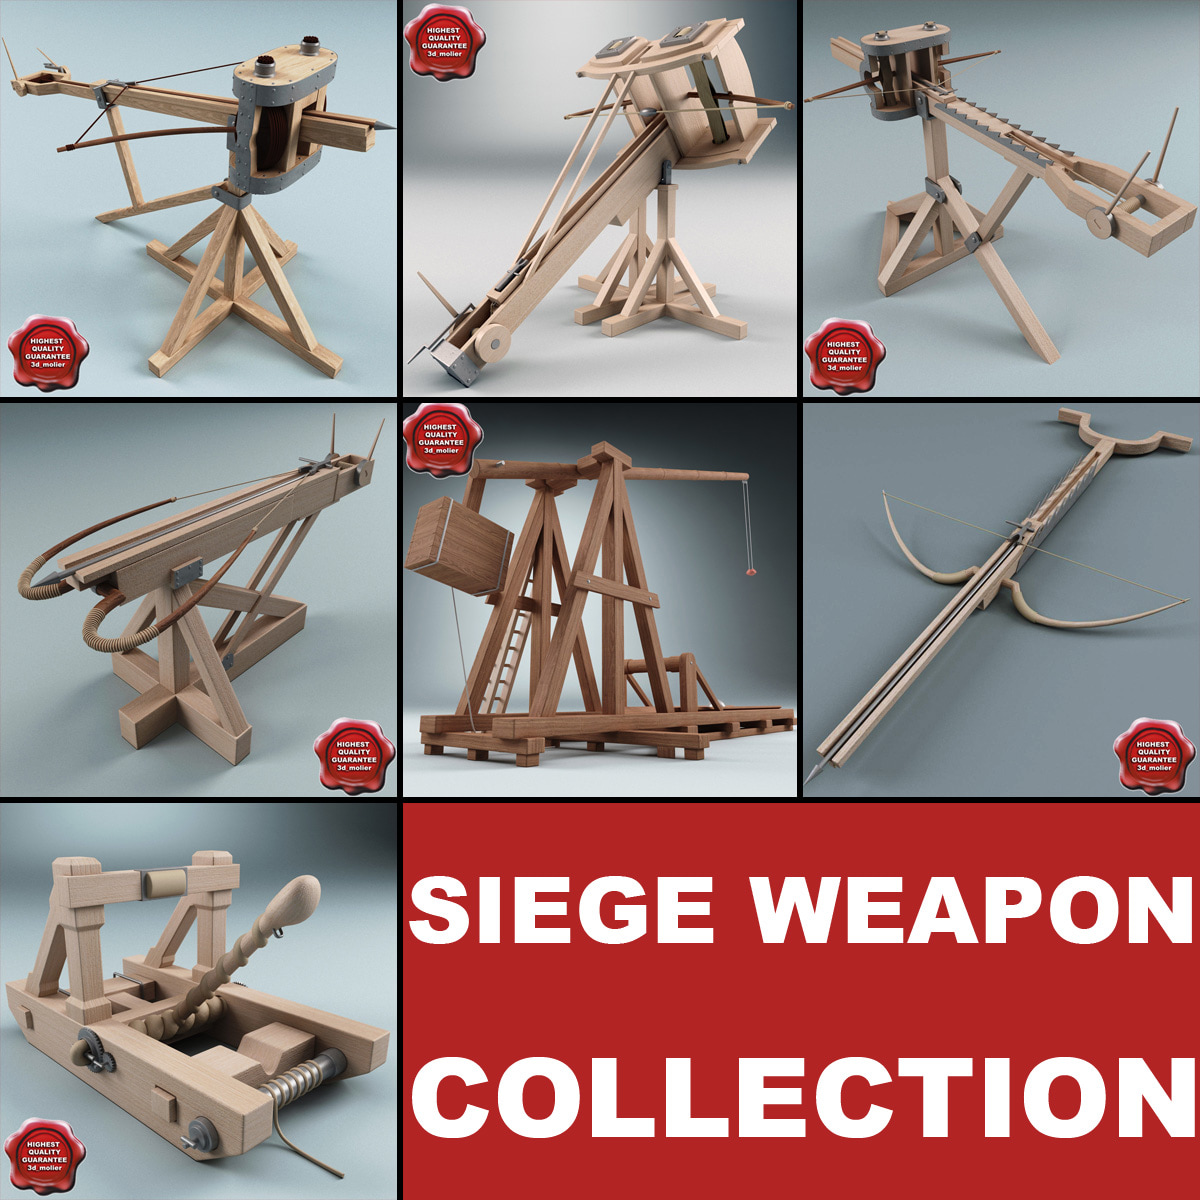 Siege_Weapons_Collection_00.jpg